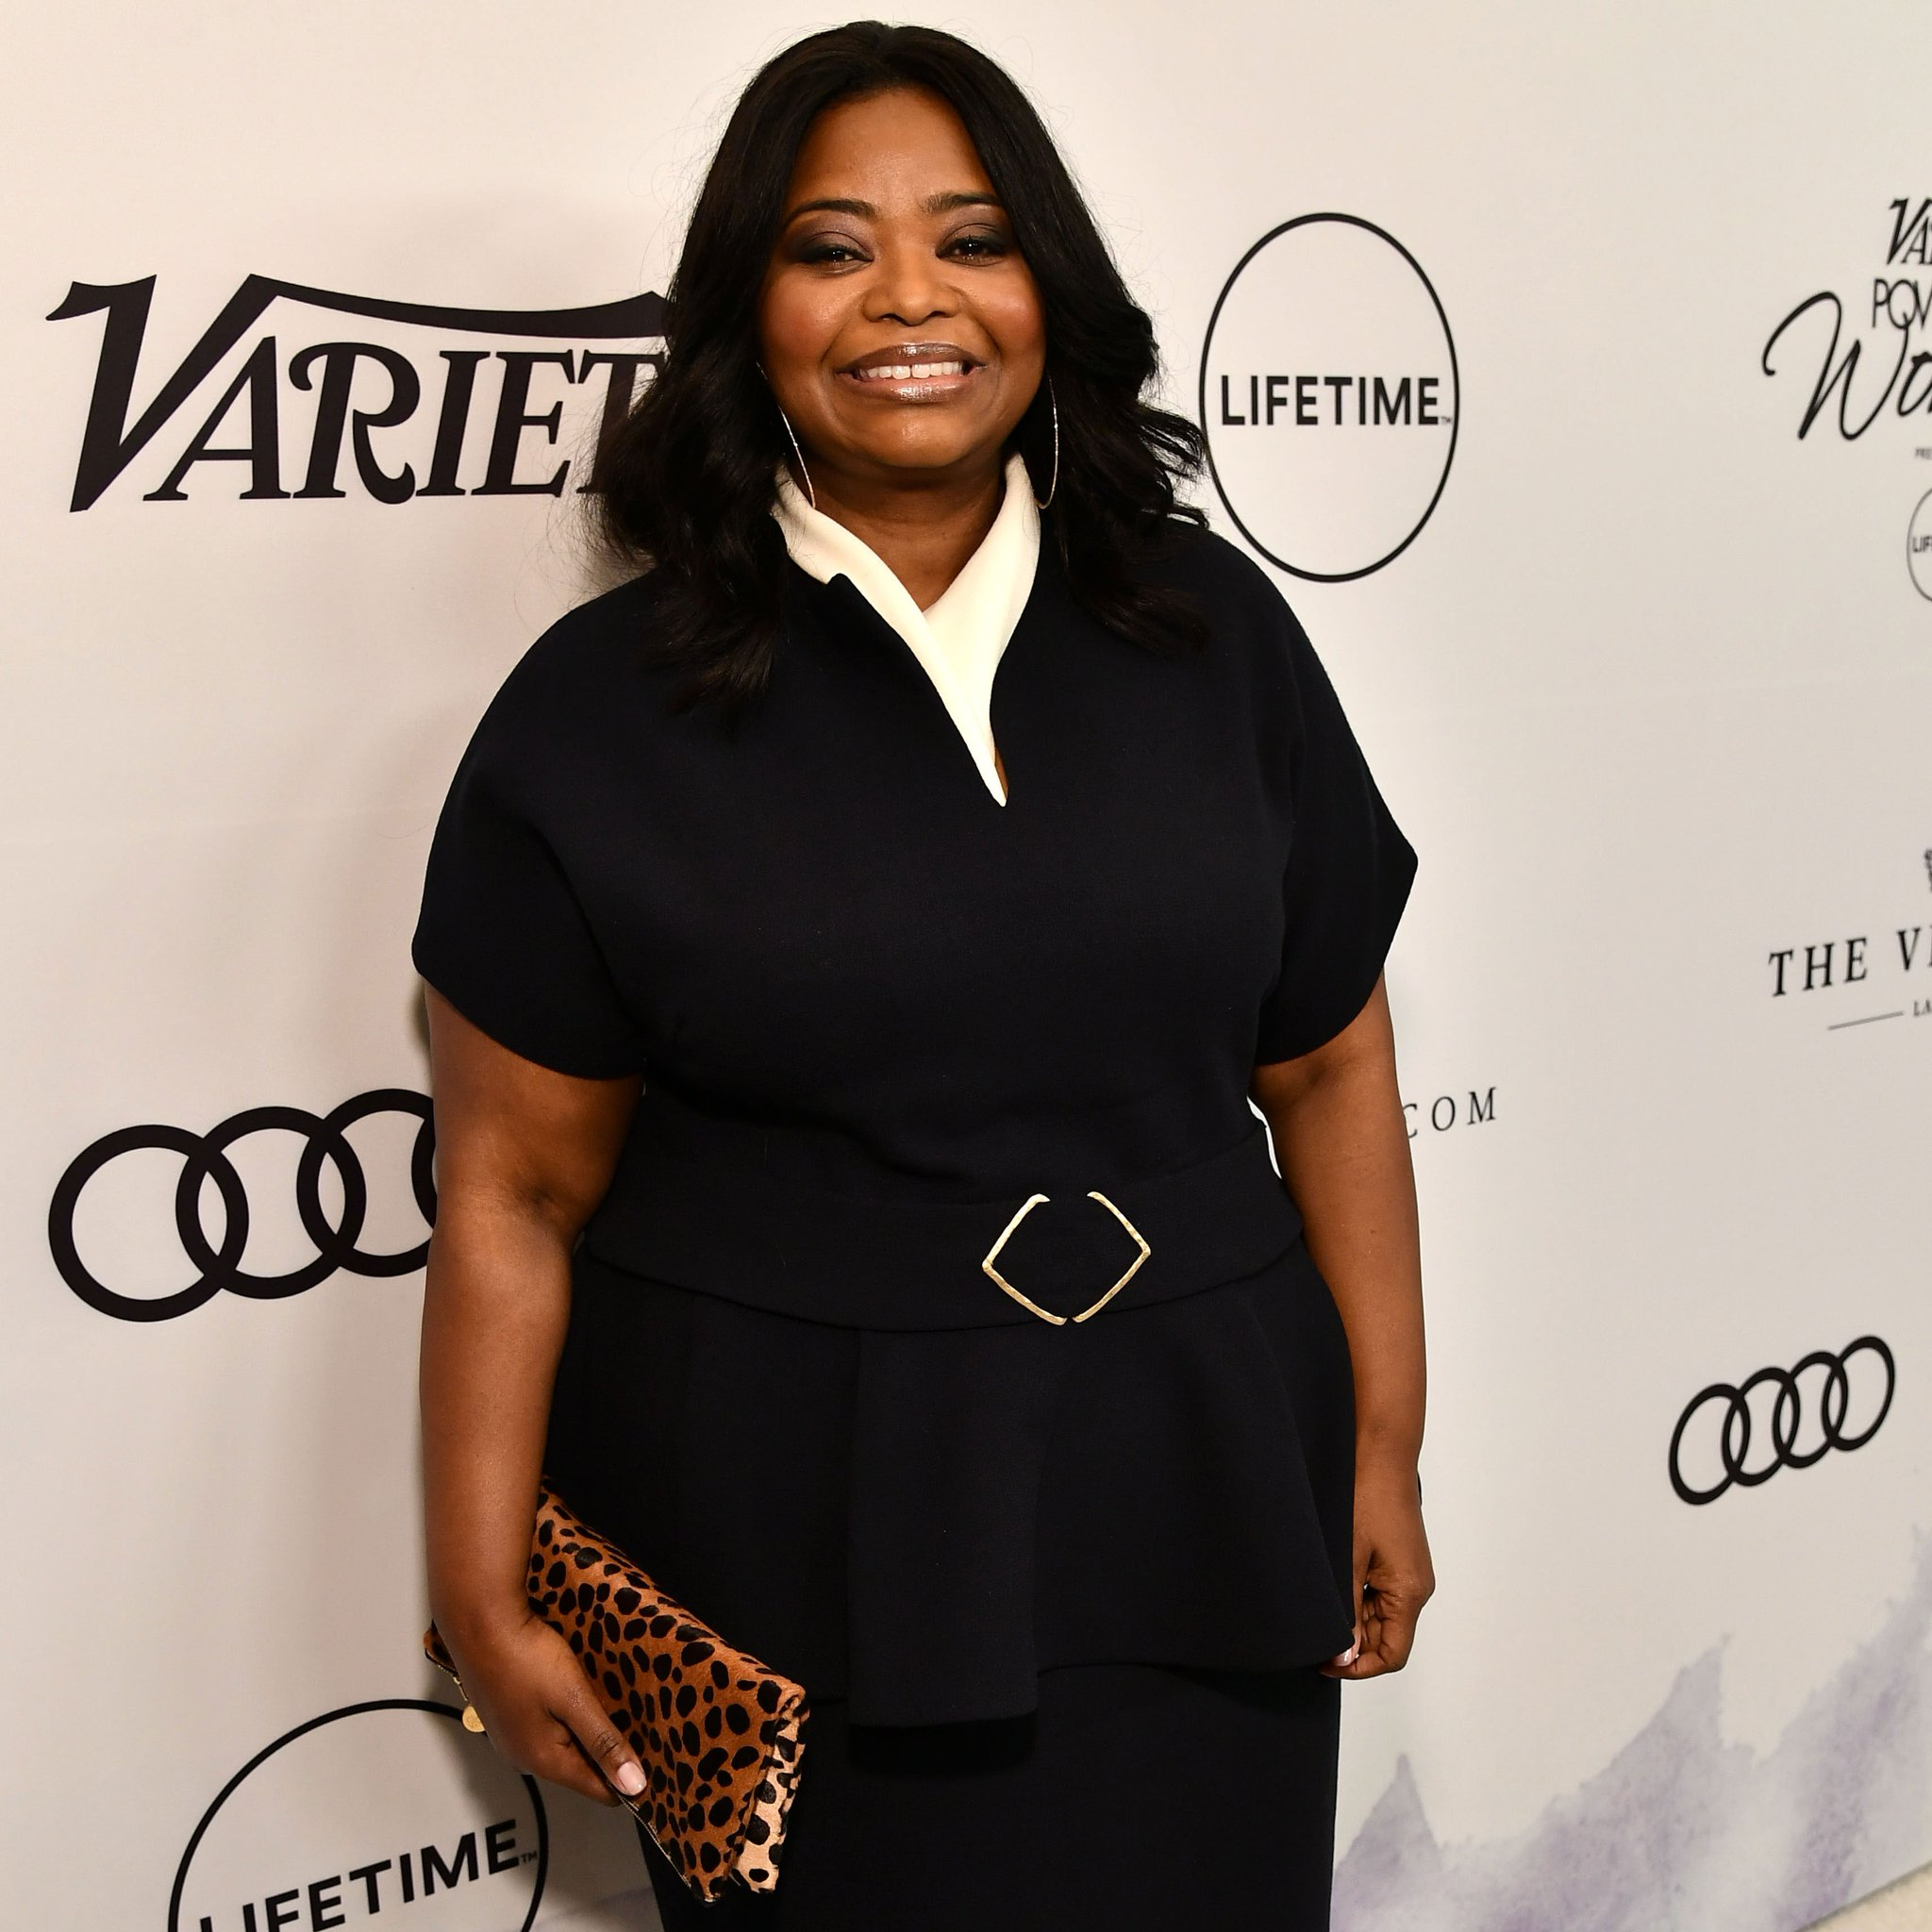 .@octaviaspencer walks the red carpet at Variety's #PowerOfWomen presented by @lifetimetv https://t.co/GAlHL8zC4g https://t.co/BFOzd5O9oV